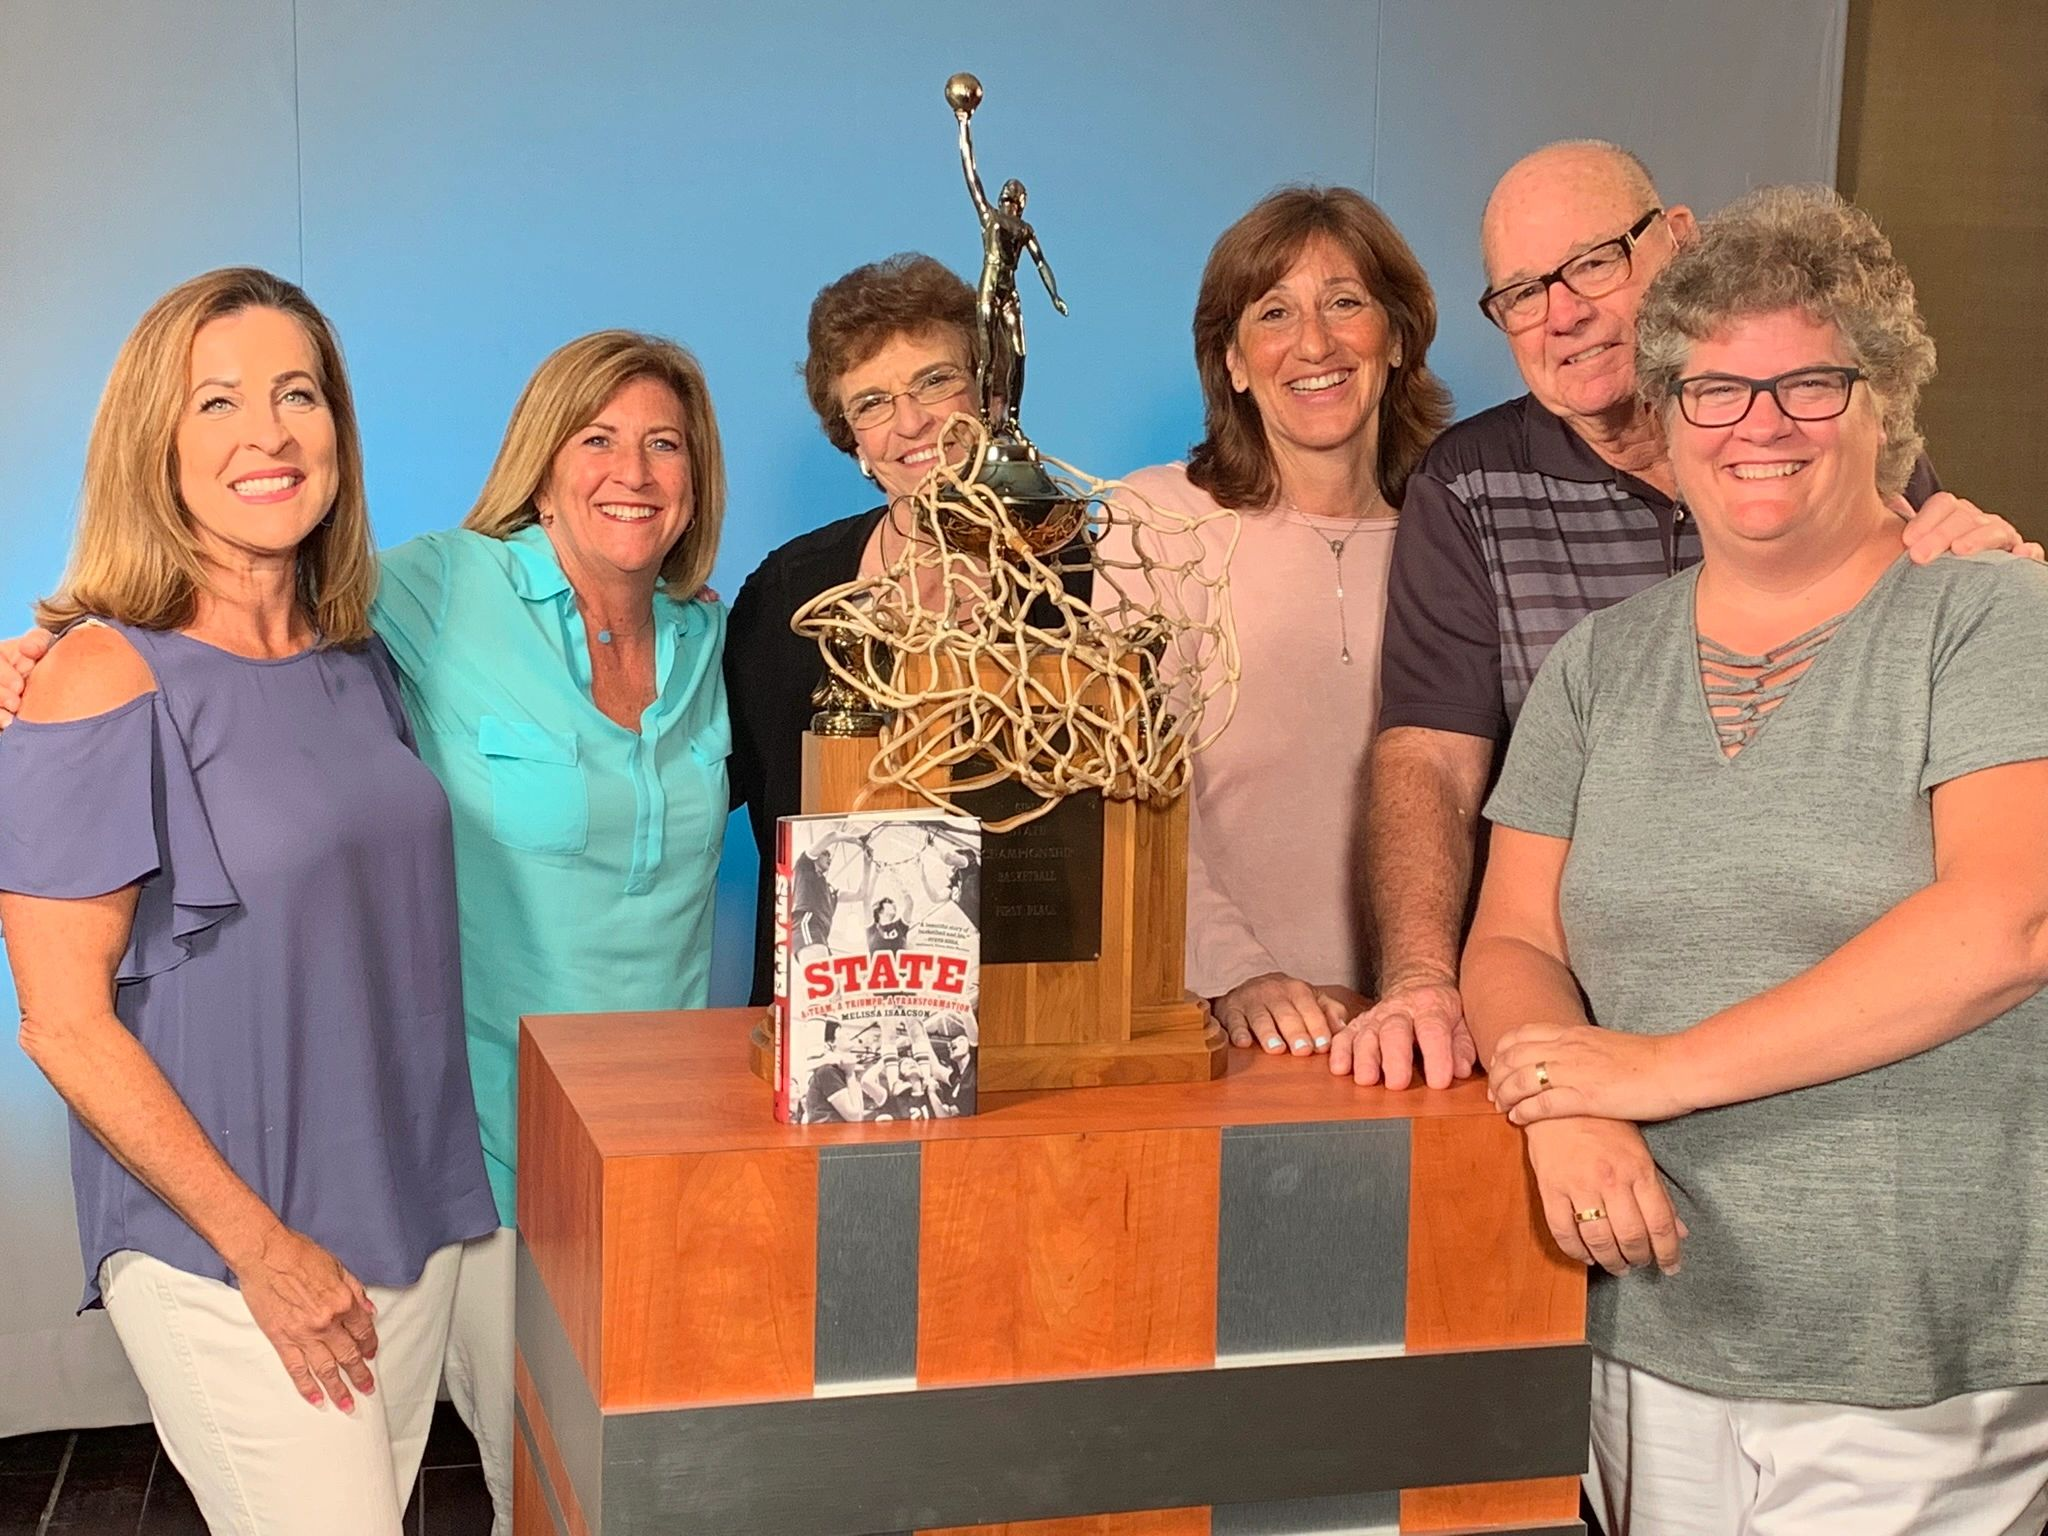 "{""blocks"":[{""key"":""f3fpd"",""text"":""Author Melissa Isaacson and her 1979 Niles West ILLINOIS State champion coaches & teammates featured in the book, ""State"".  Also on our episode ""Women in Sports: Where's the Love?""  https://soundcloud.com/jwkpeg/women-in-sports-wheres-the-love-special-guest-melissa-isaacson on #SoundCloud"",""type"":""unstyled"",""depth"":0,""inlineStyleRanges"":[],""entityRanges"":[],""data"":{}}],""entityMap"":{}}"